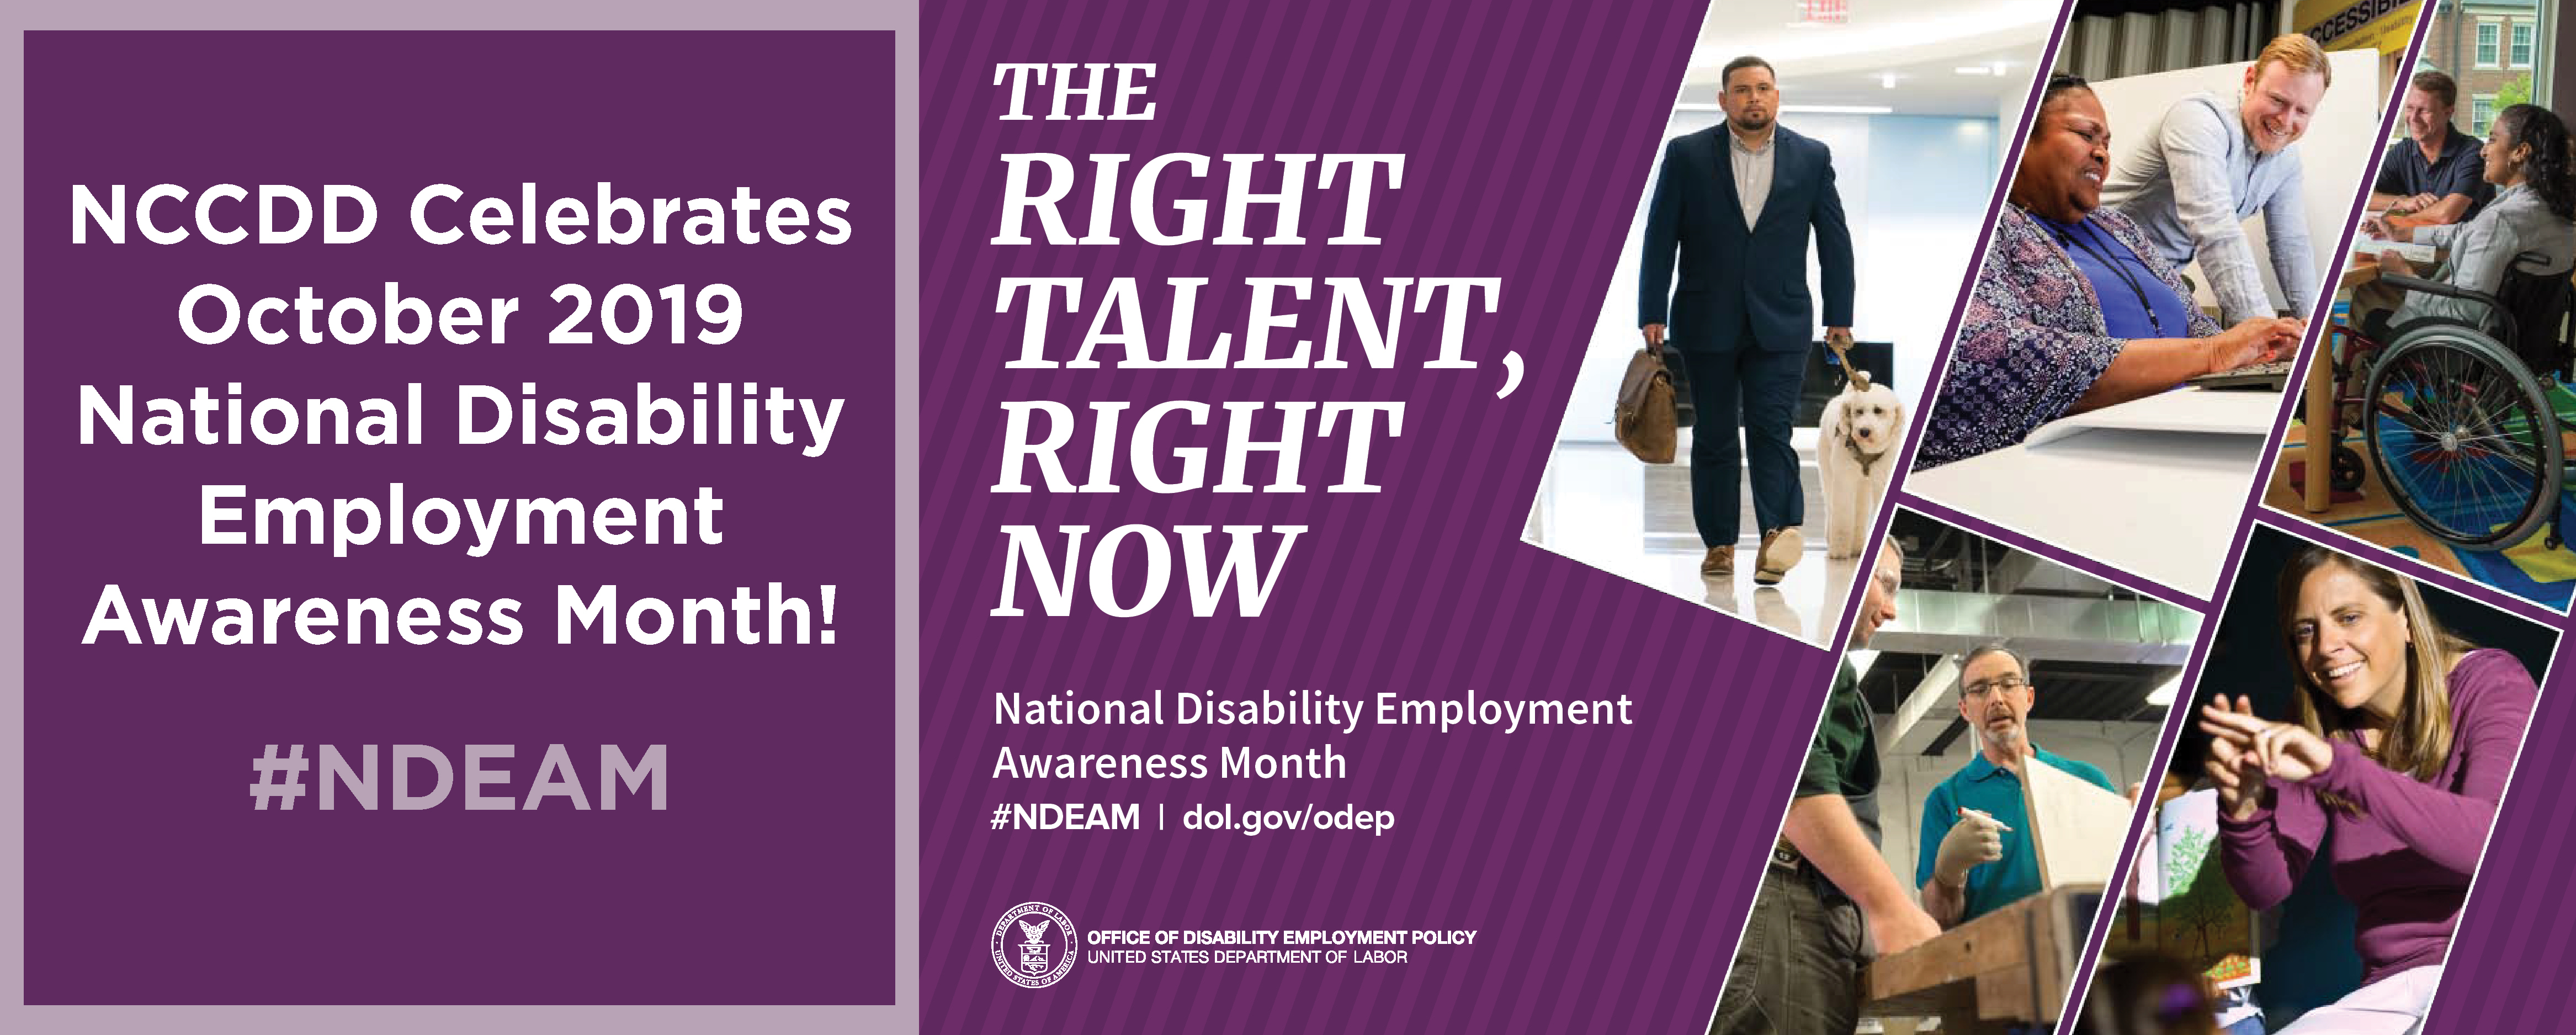 Celebrate National Disability Employment Awareness Month October 2019, #NDEAM